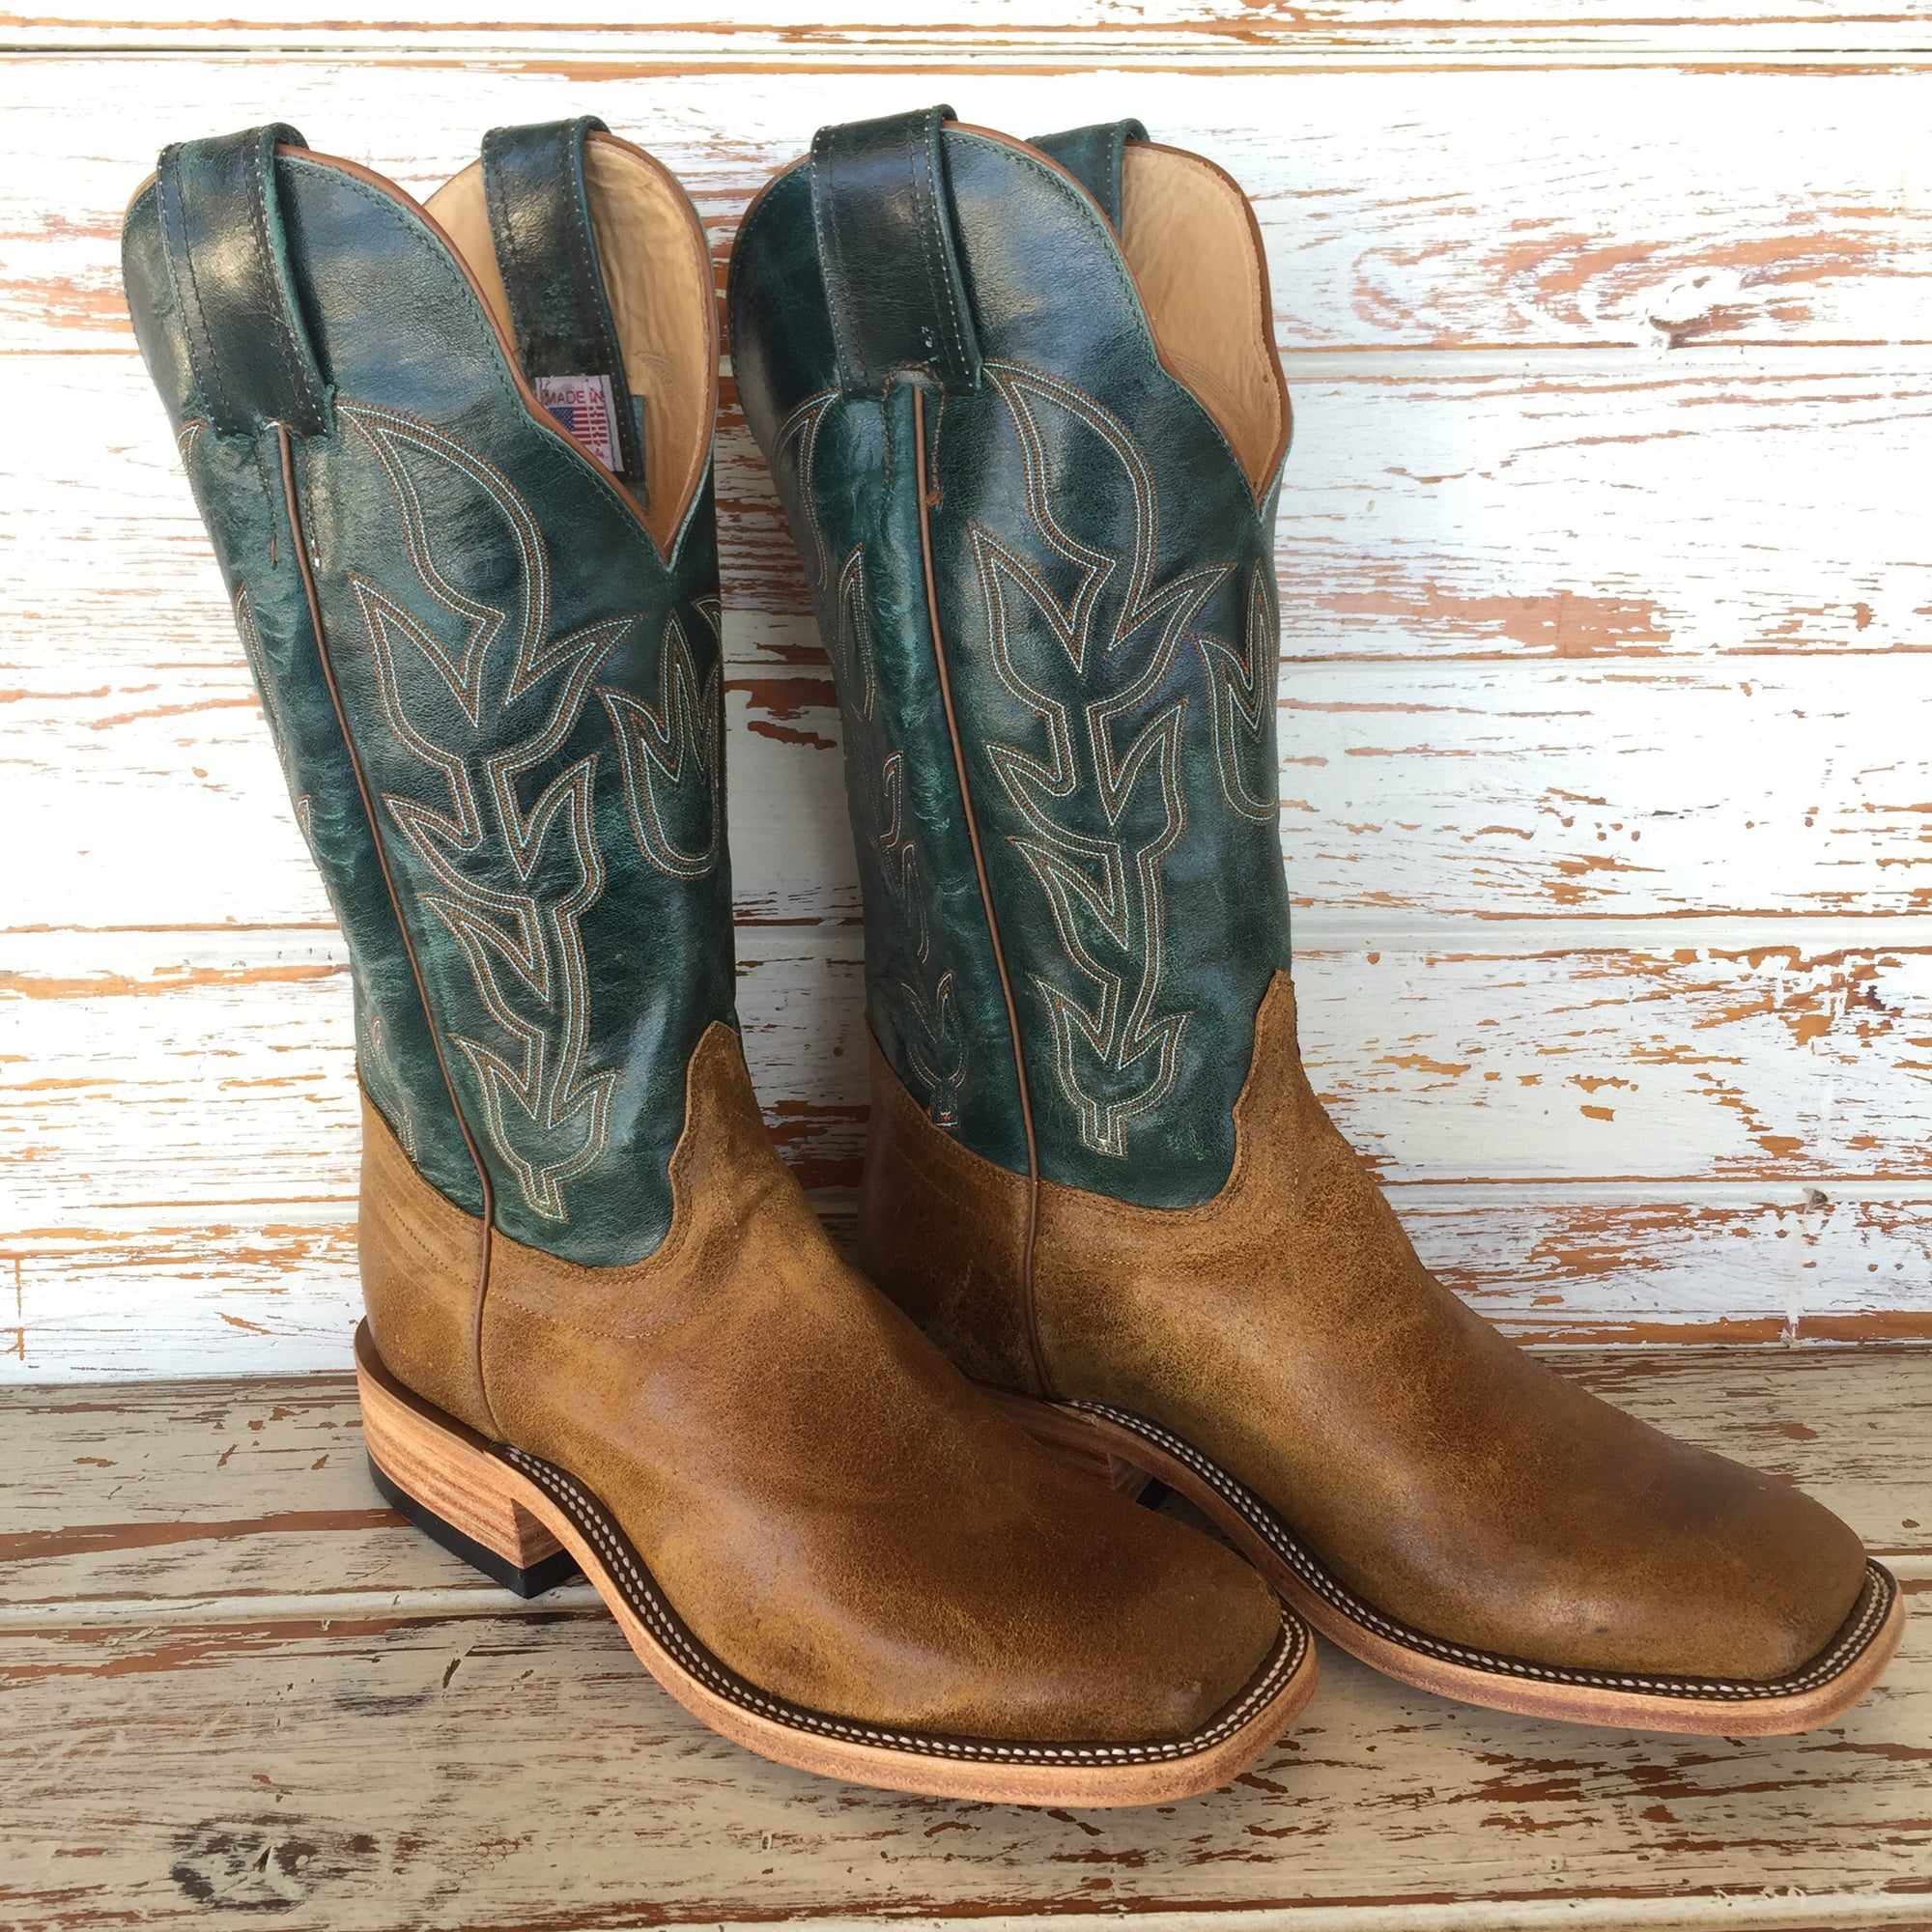 "Turquoise Rocksteer 13"" Top Handmade Boots by Olathe Boots"